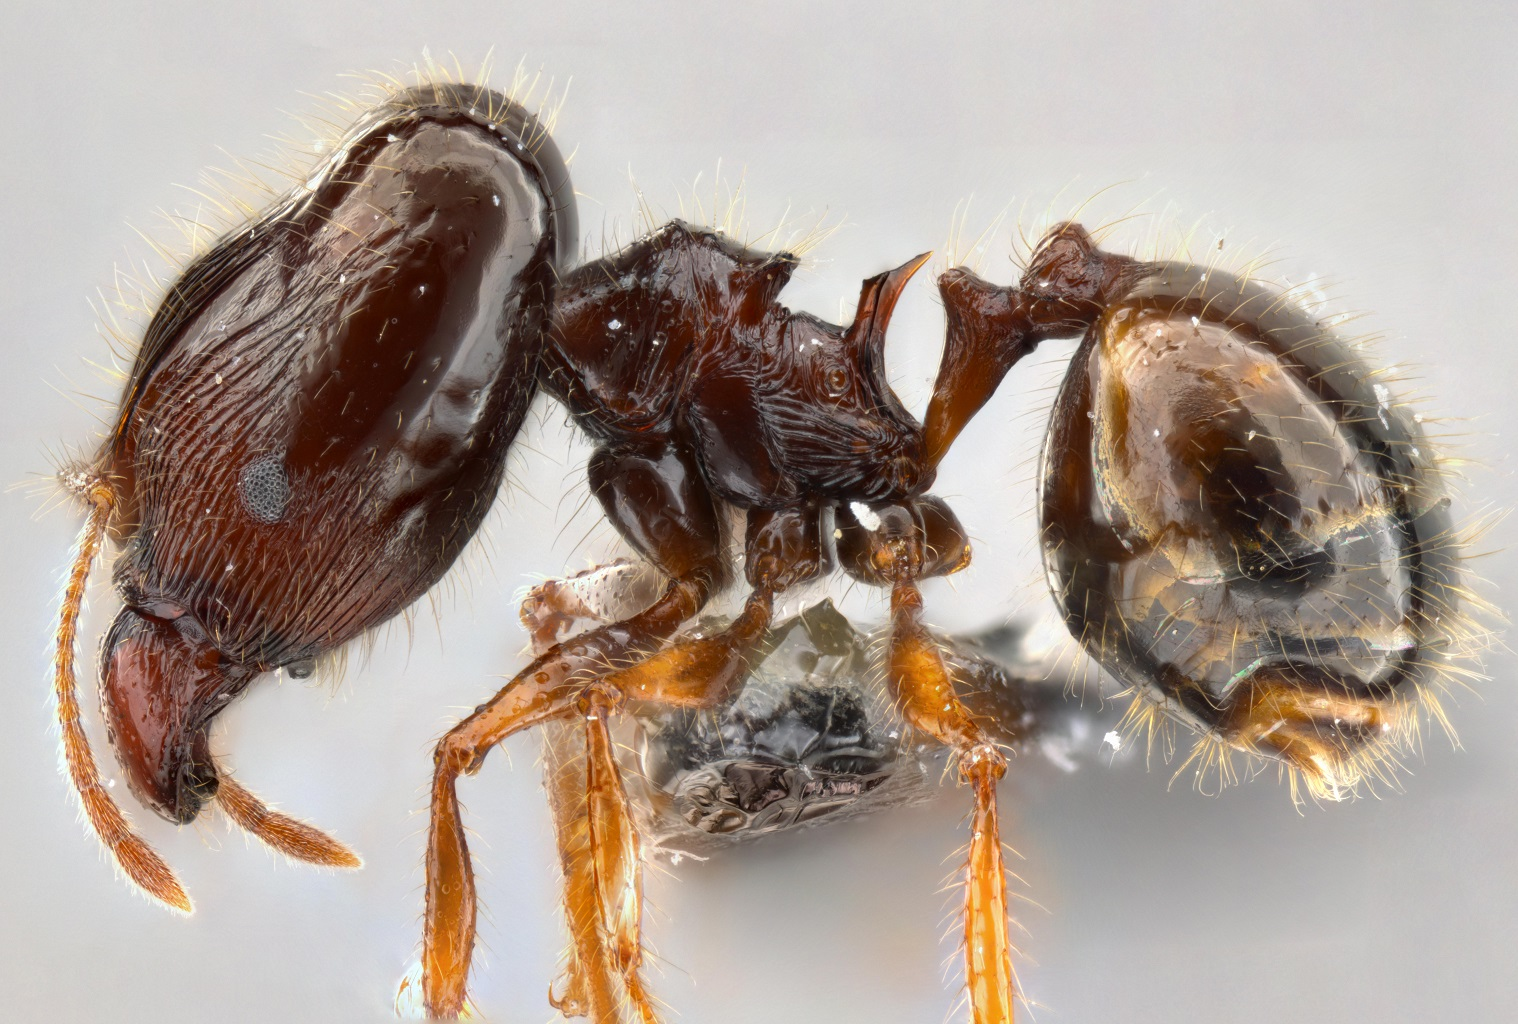 Pheidole colaensis major